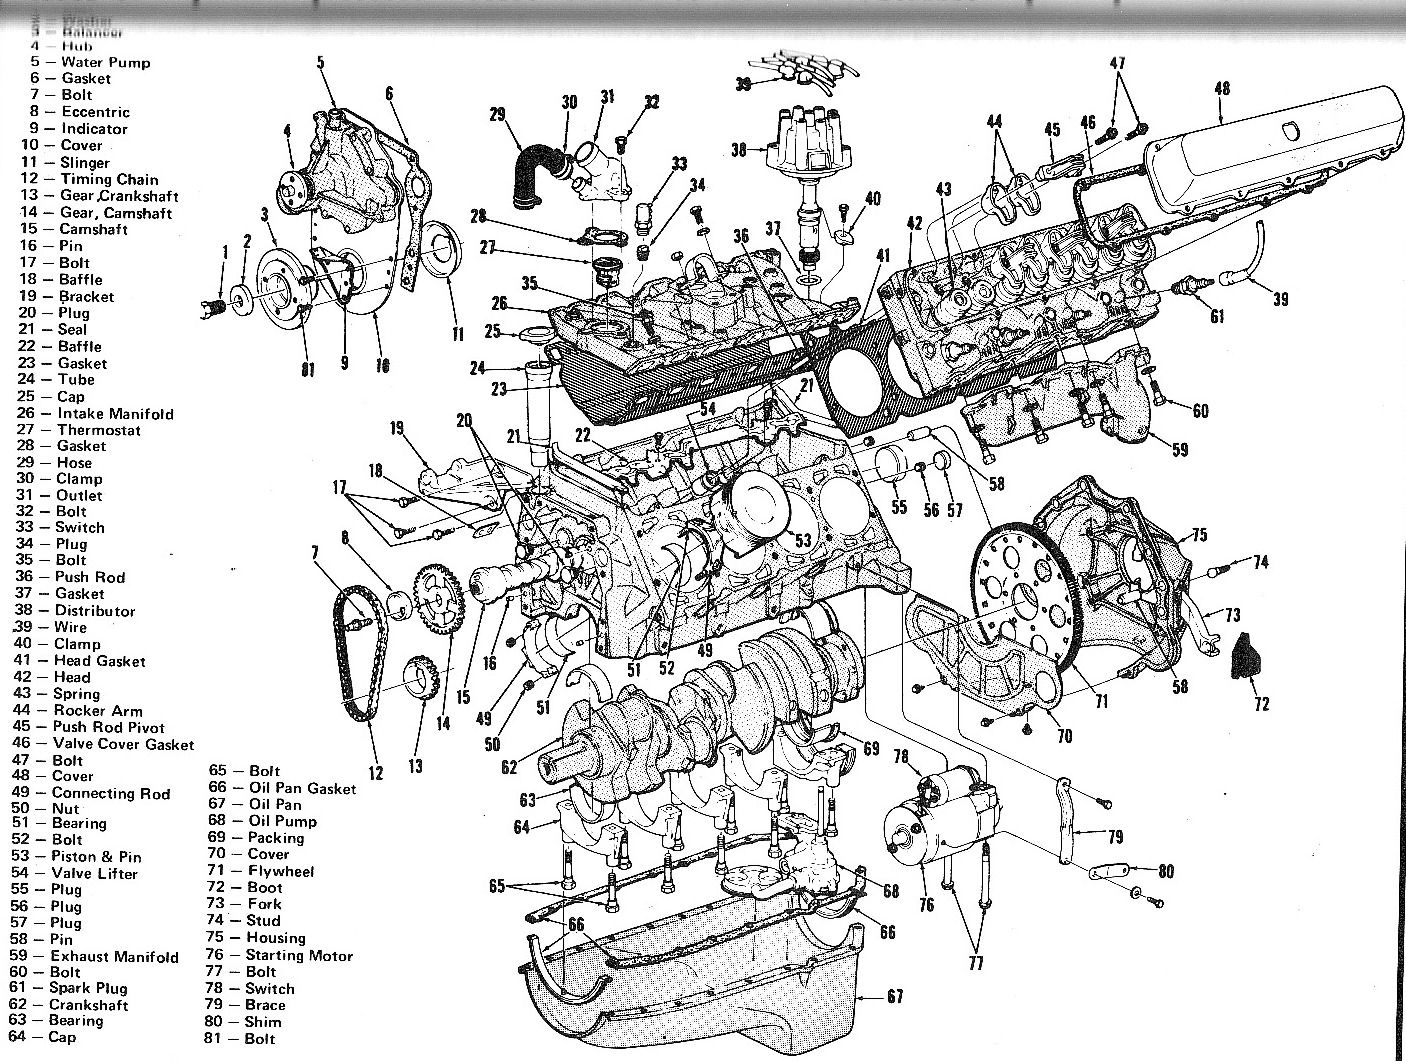 medium resolution of complete v 8 engine diagram car stuff diagram mustang chevy cars